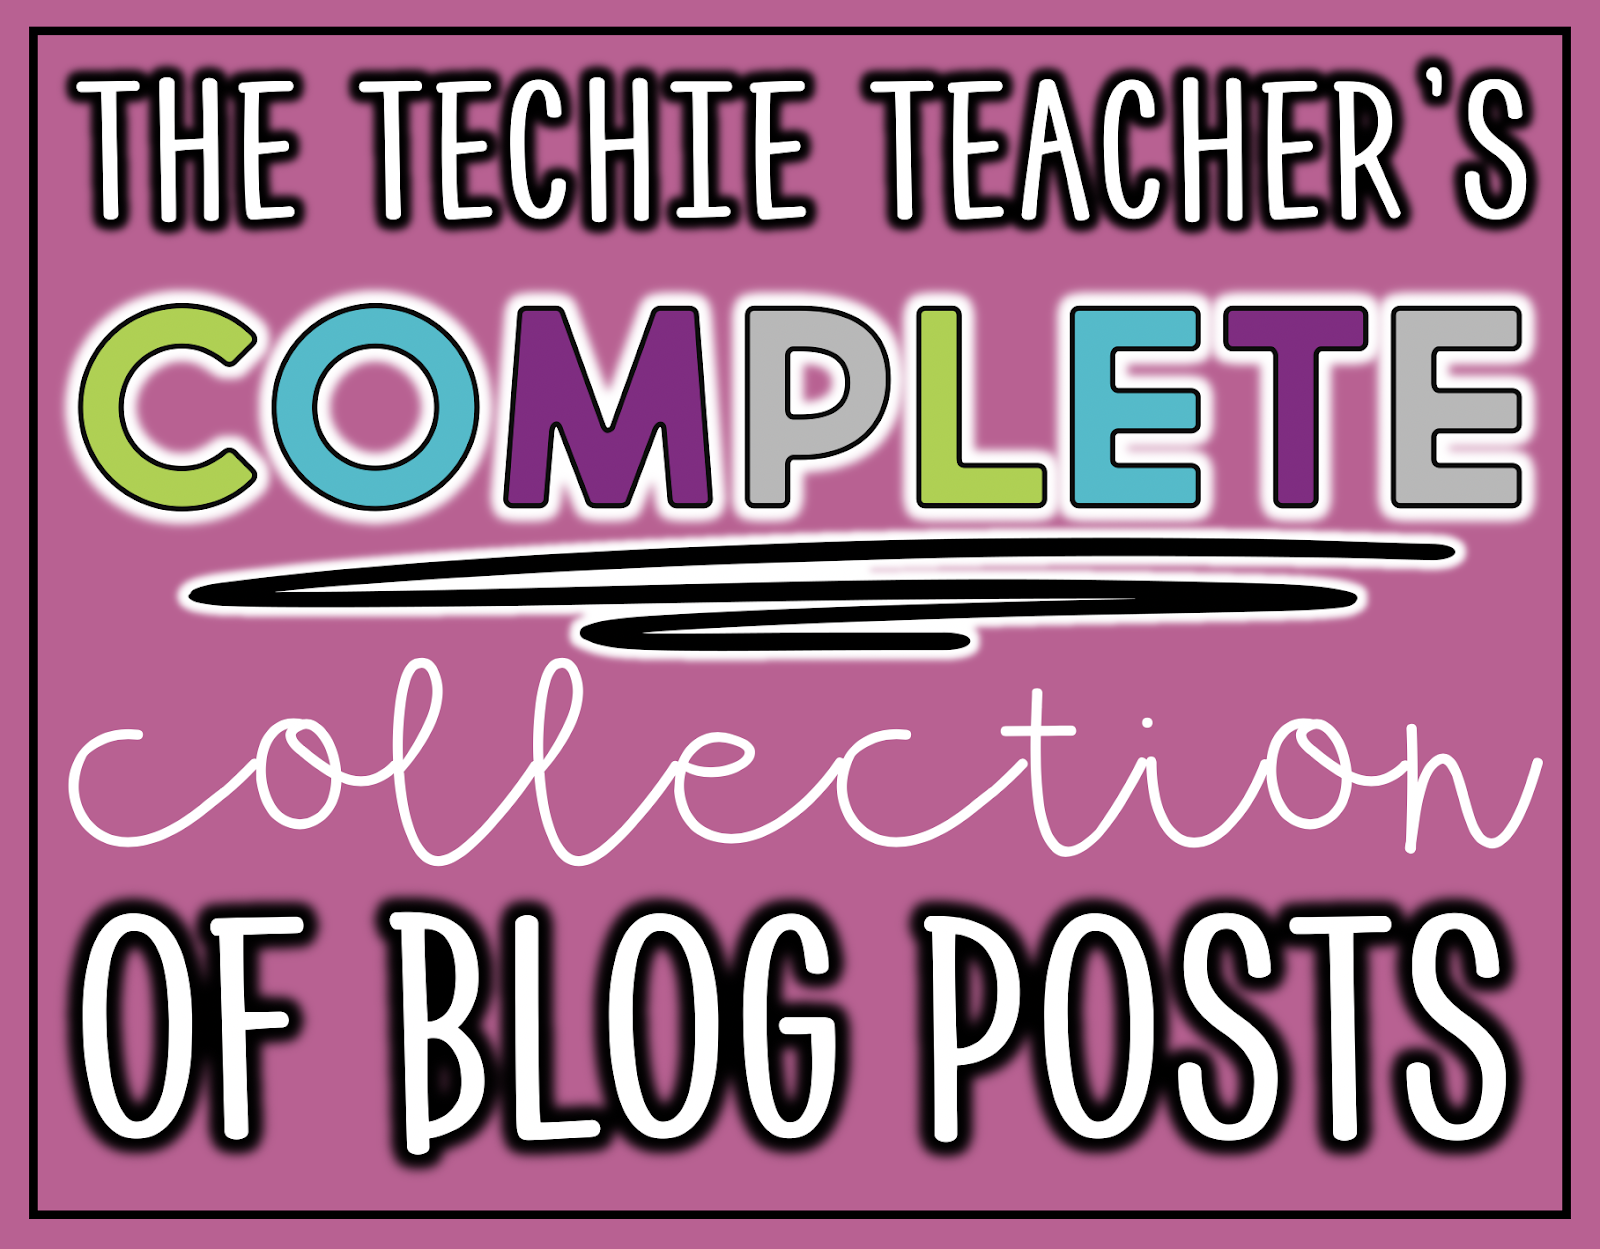 The Techie Teacher's Complete Collection of Blog Posts: This easy to use database that was created in Google Sheets lists all kinds of blog posts that contain ideas for integrating technology in the elementary classroom.